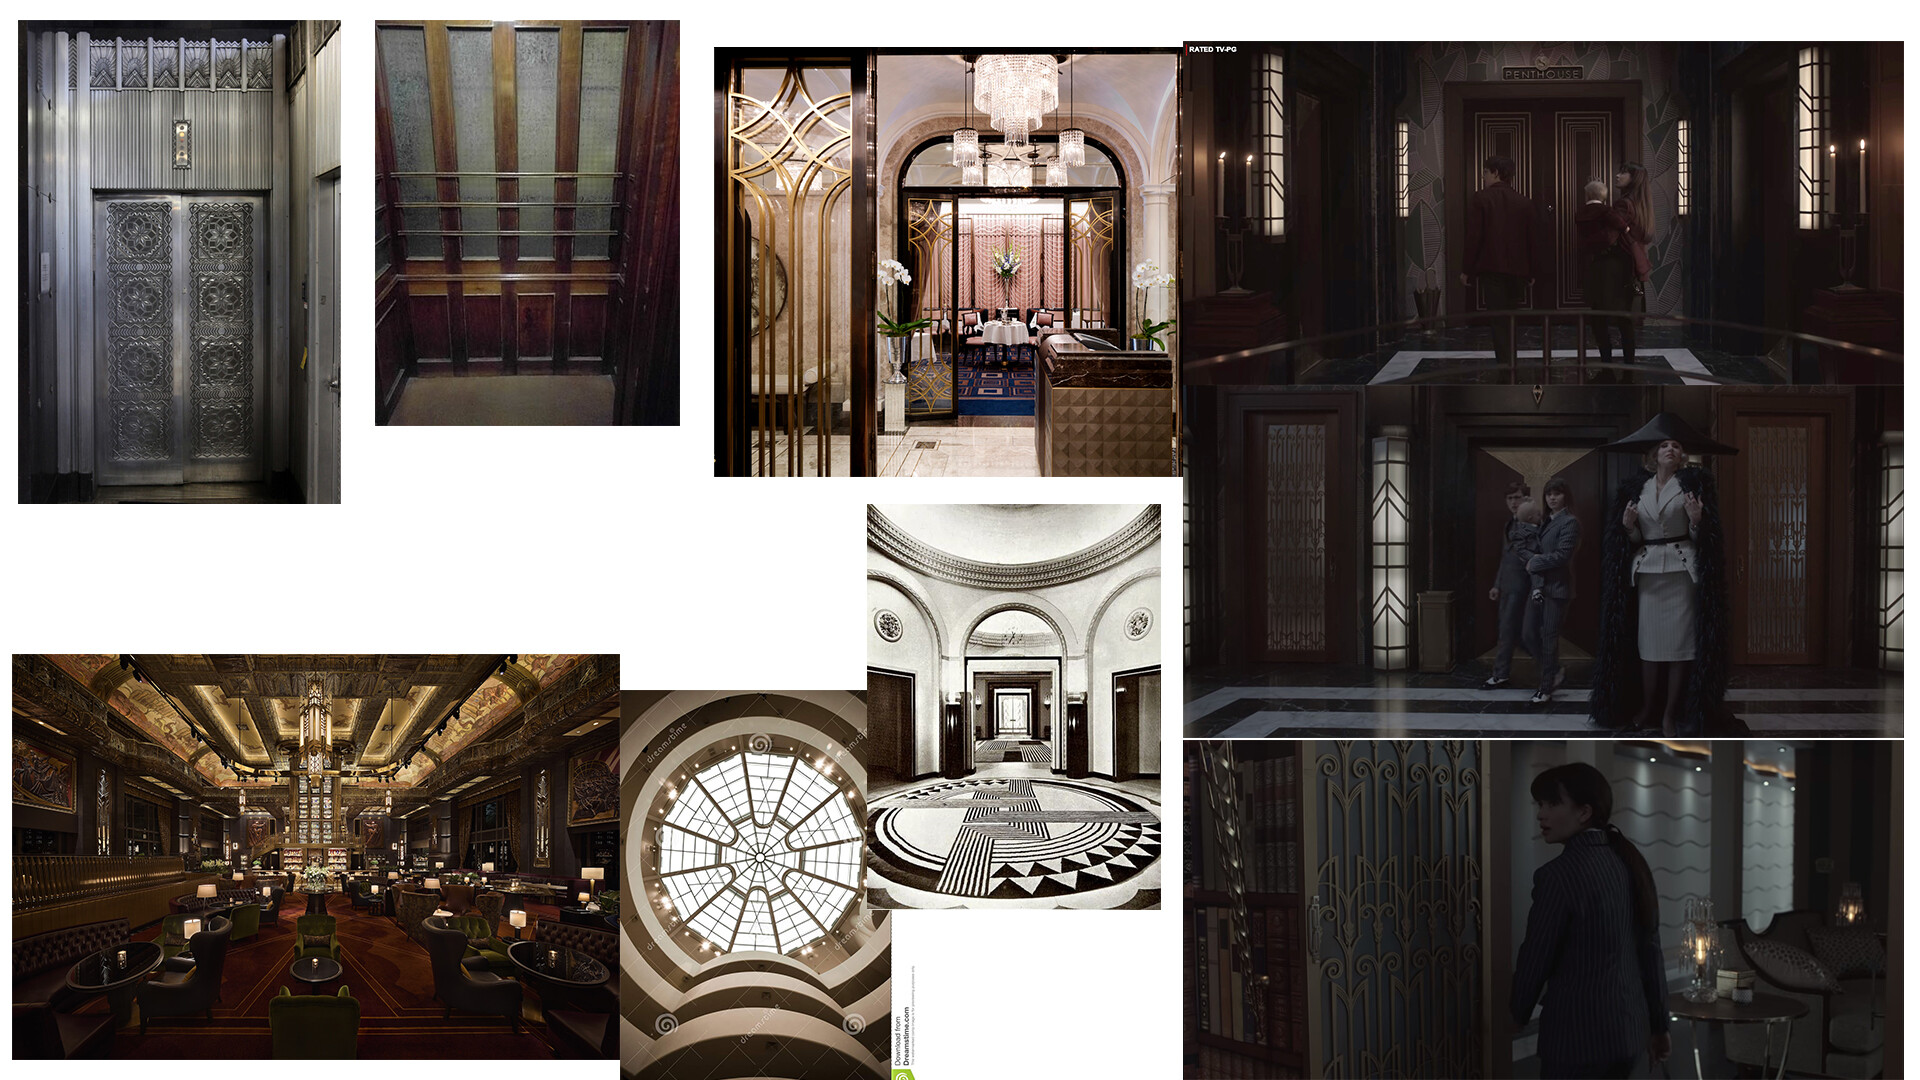 Some of the main concept art I gathered for the project, shout out to A series of unfortunate events for being just a wealth of vis ref (and amazing)